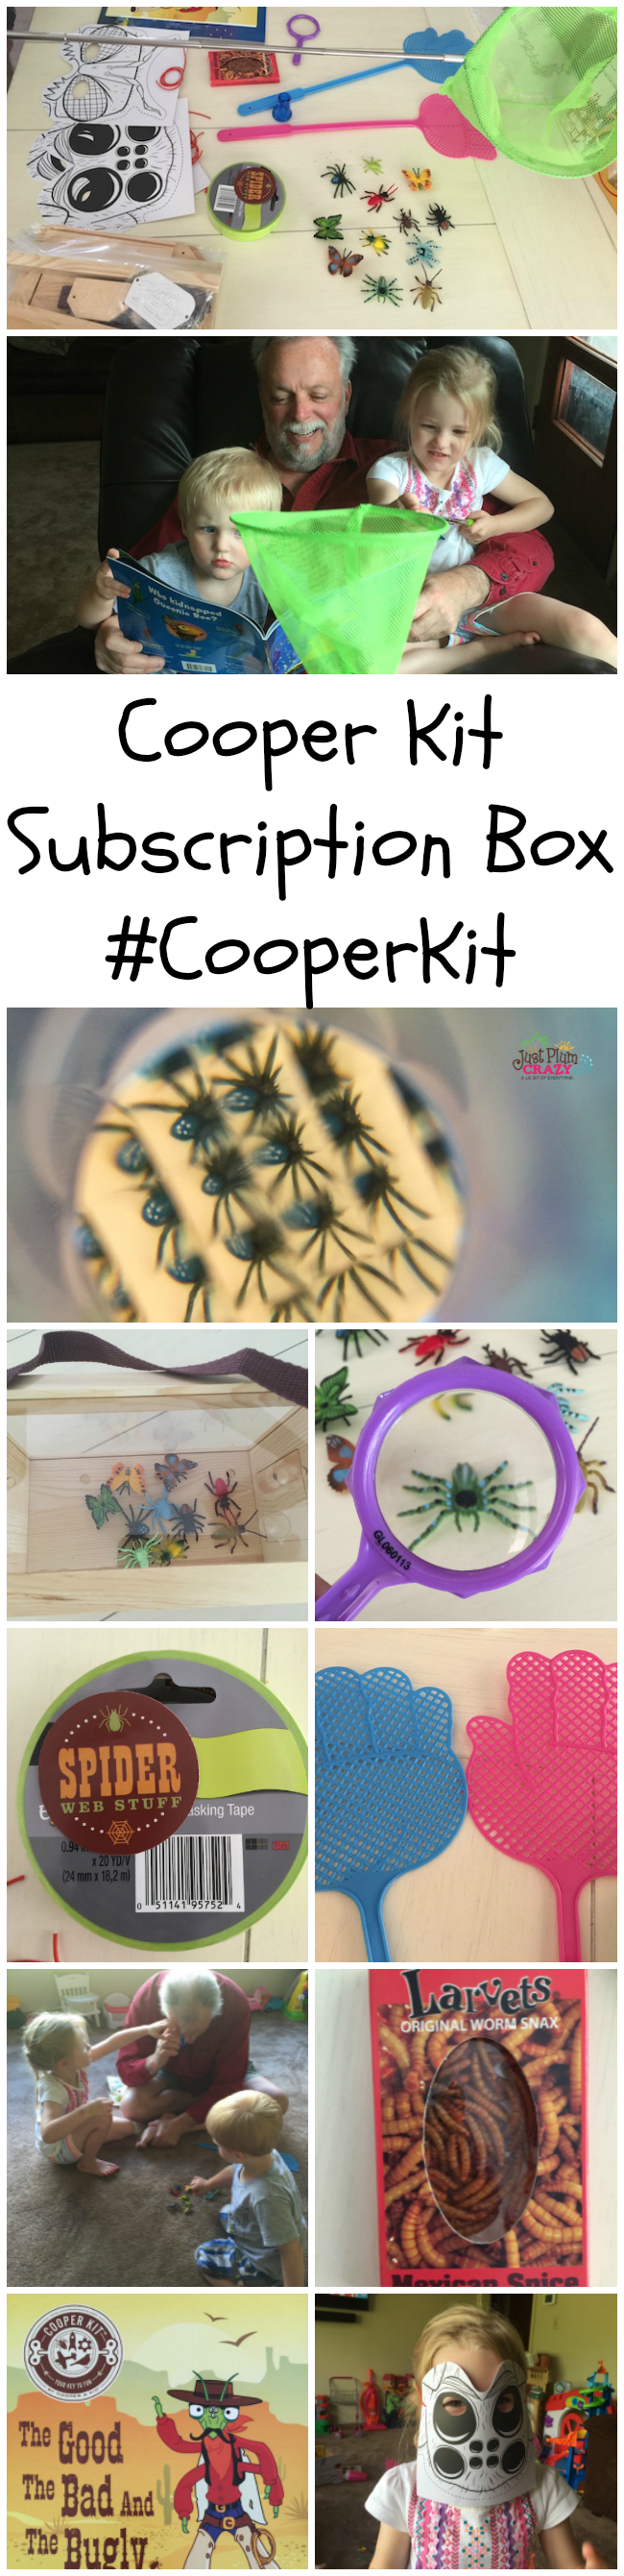 We received the Cooper Kit - The Good, The Bad & The Bugly box. It comes with a bug box that allows you to capture real bugs. It's made for kids ages 5-9.